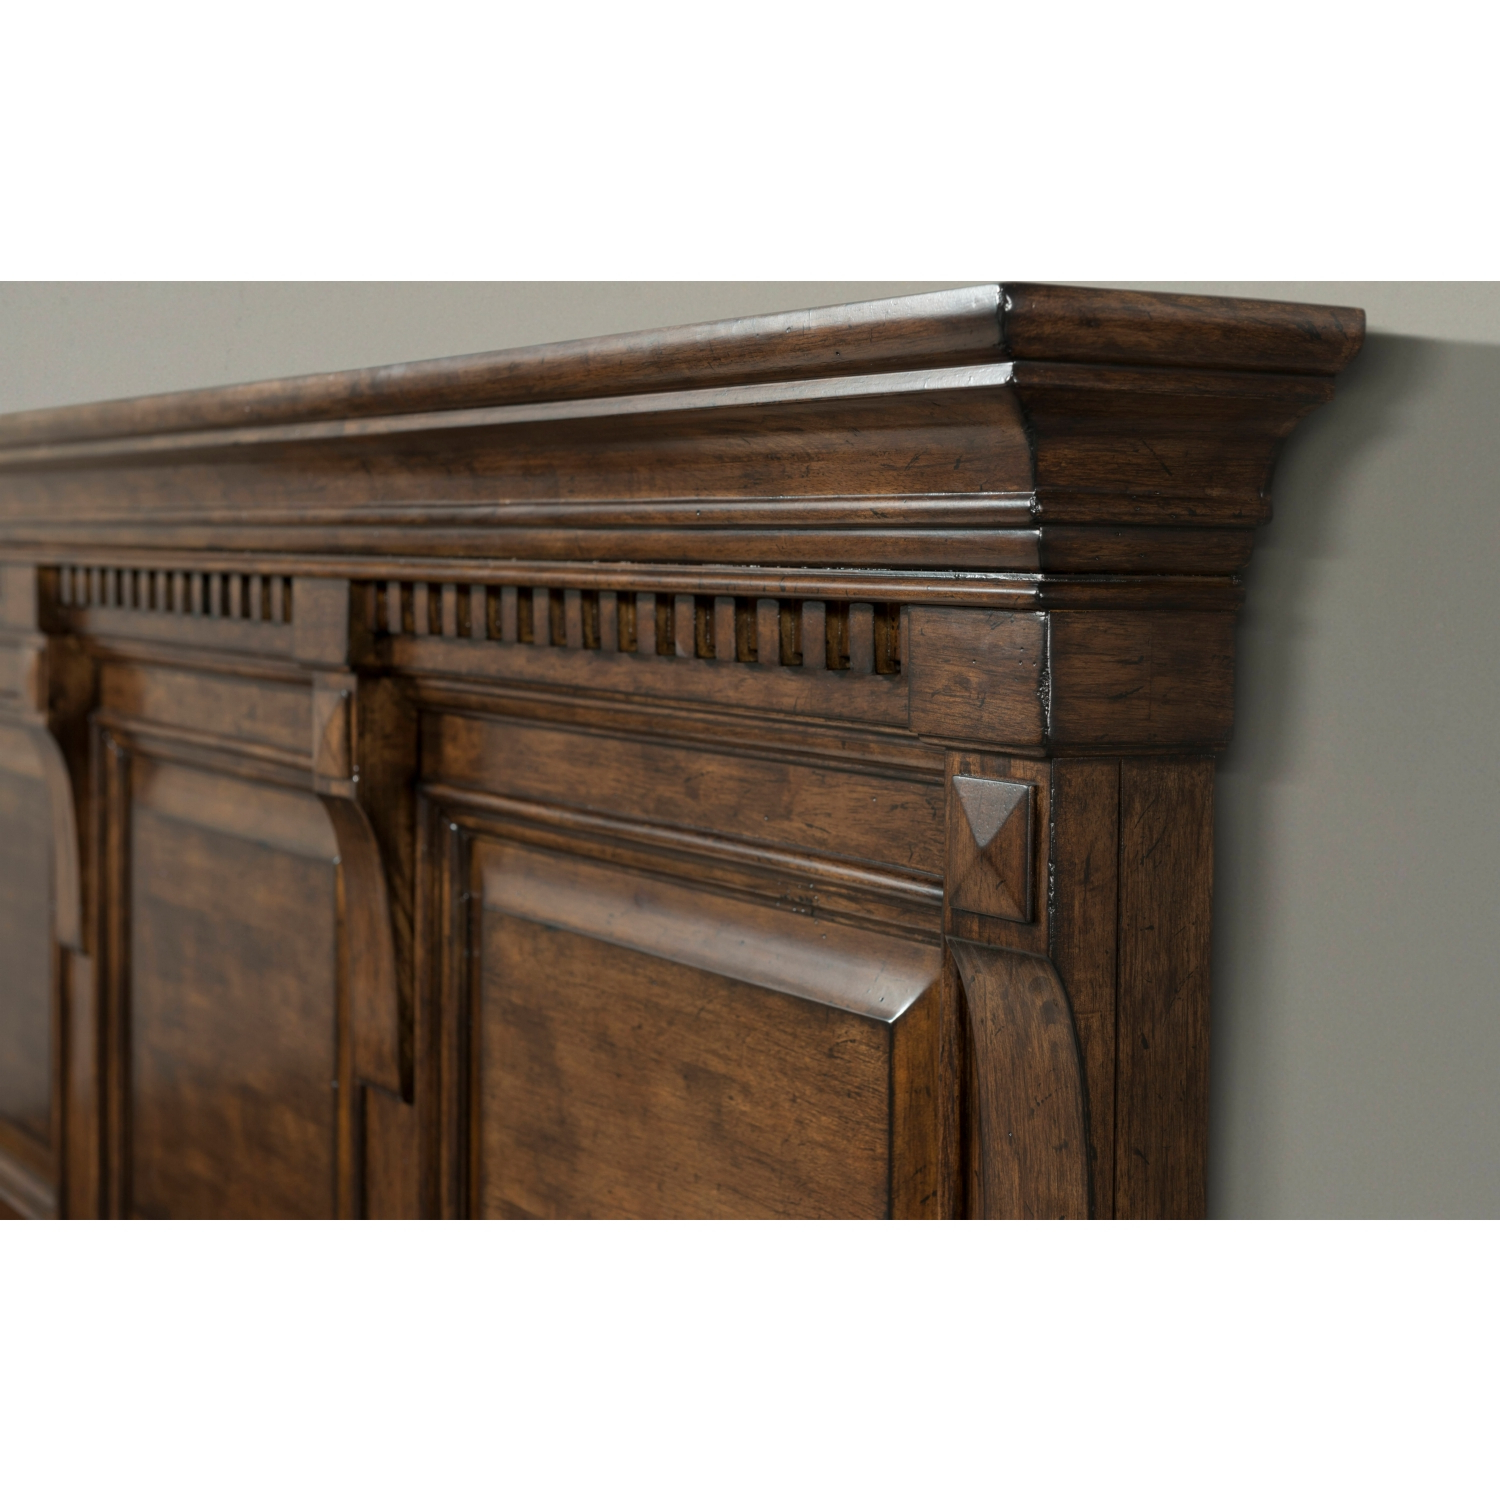 Walnut Finish Crown Moulding Sideboards Within Current Picket House Furniture Hx600Qb Henry Queen Bed In Rustic Walnut (Gallery 13 of 20)